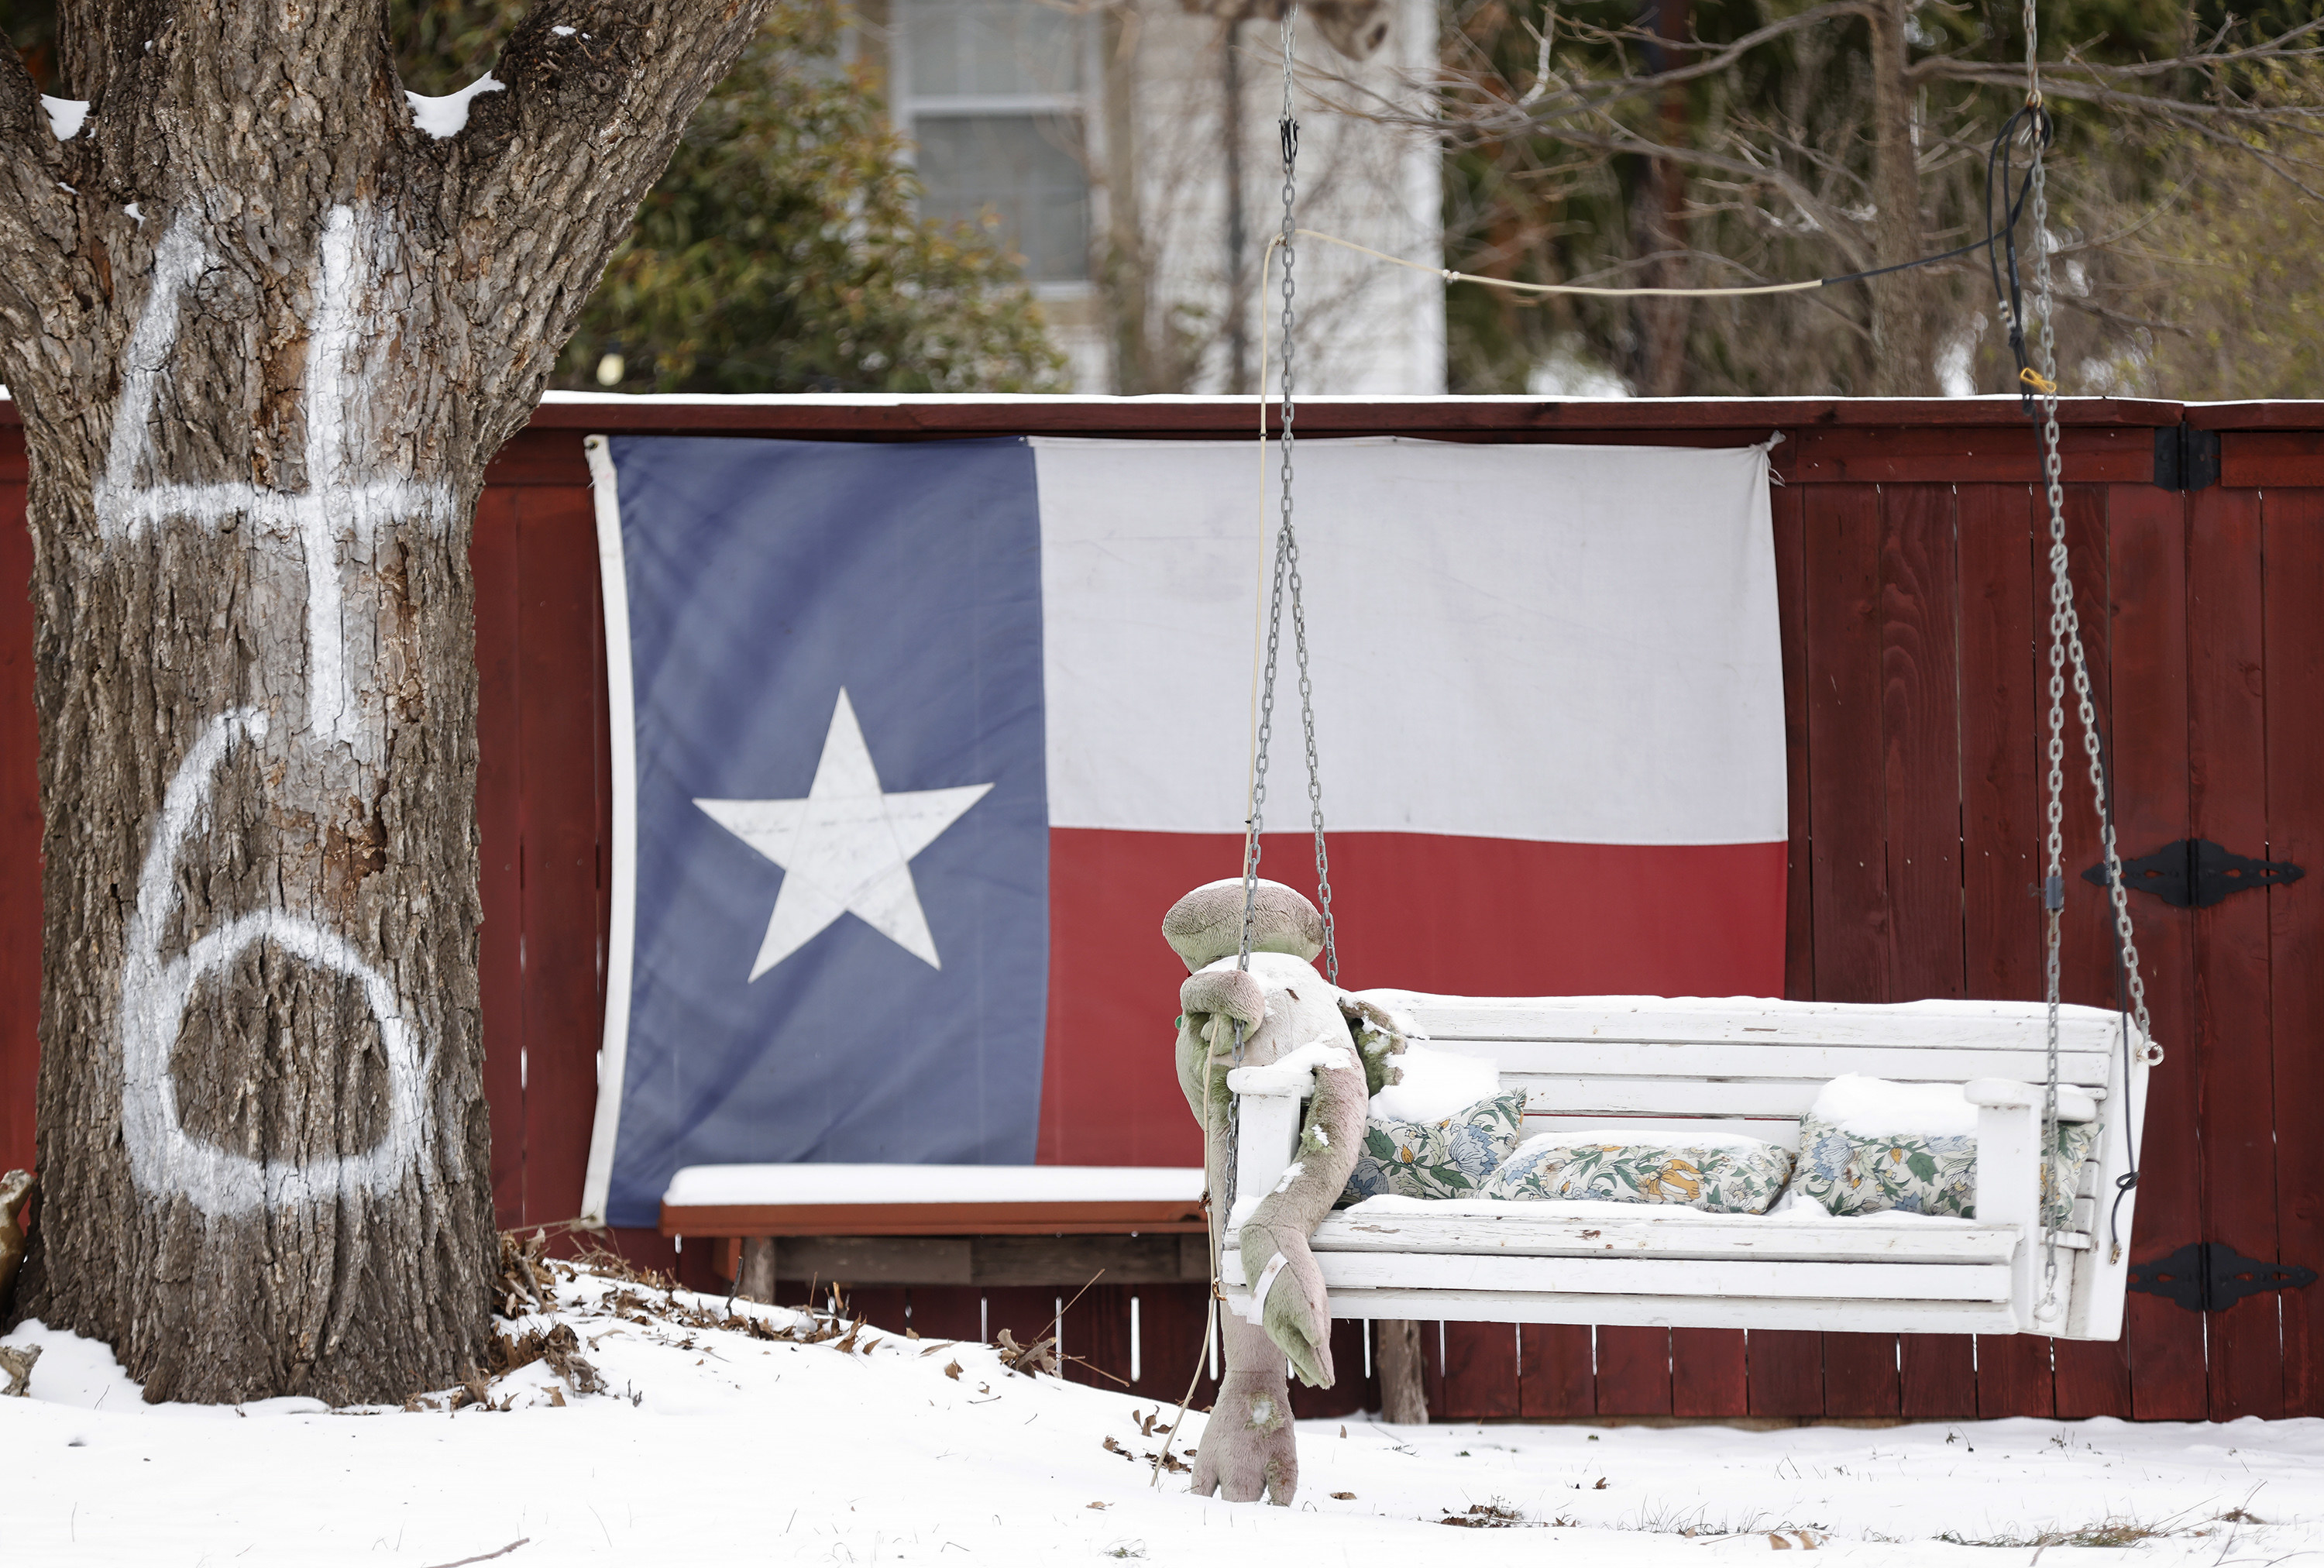 The Texas flag hangs on a fence by a snow-covered bench